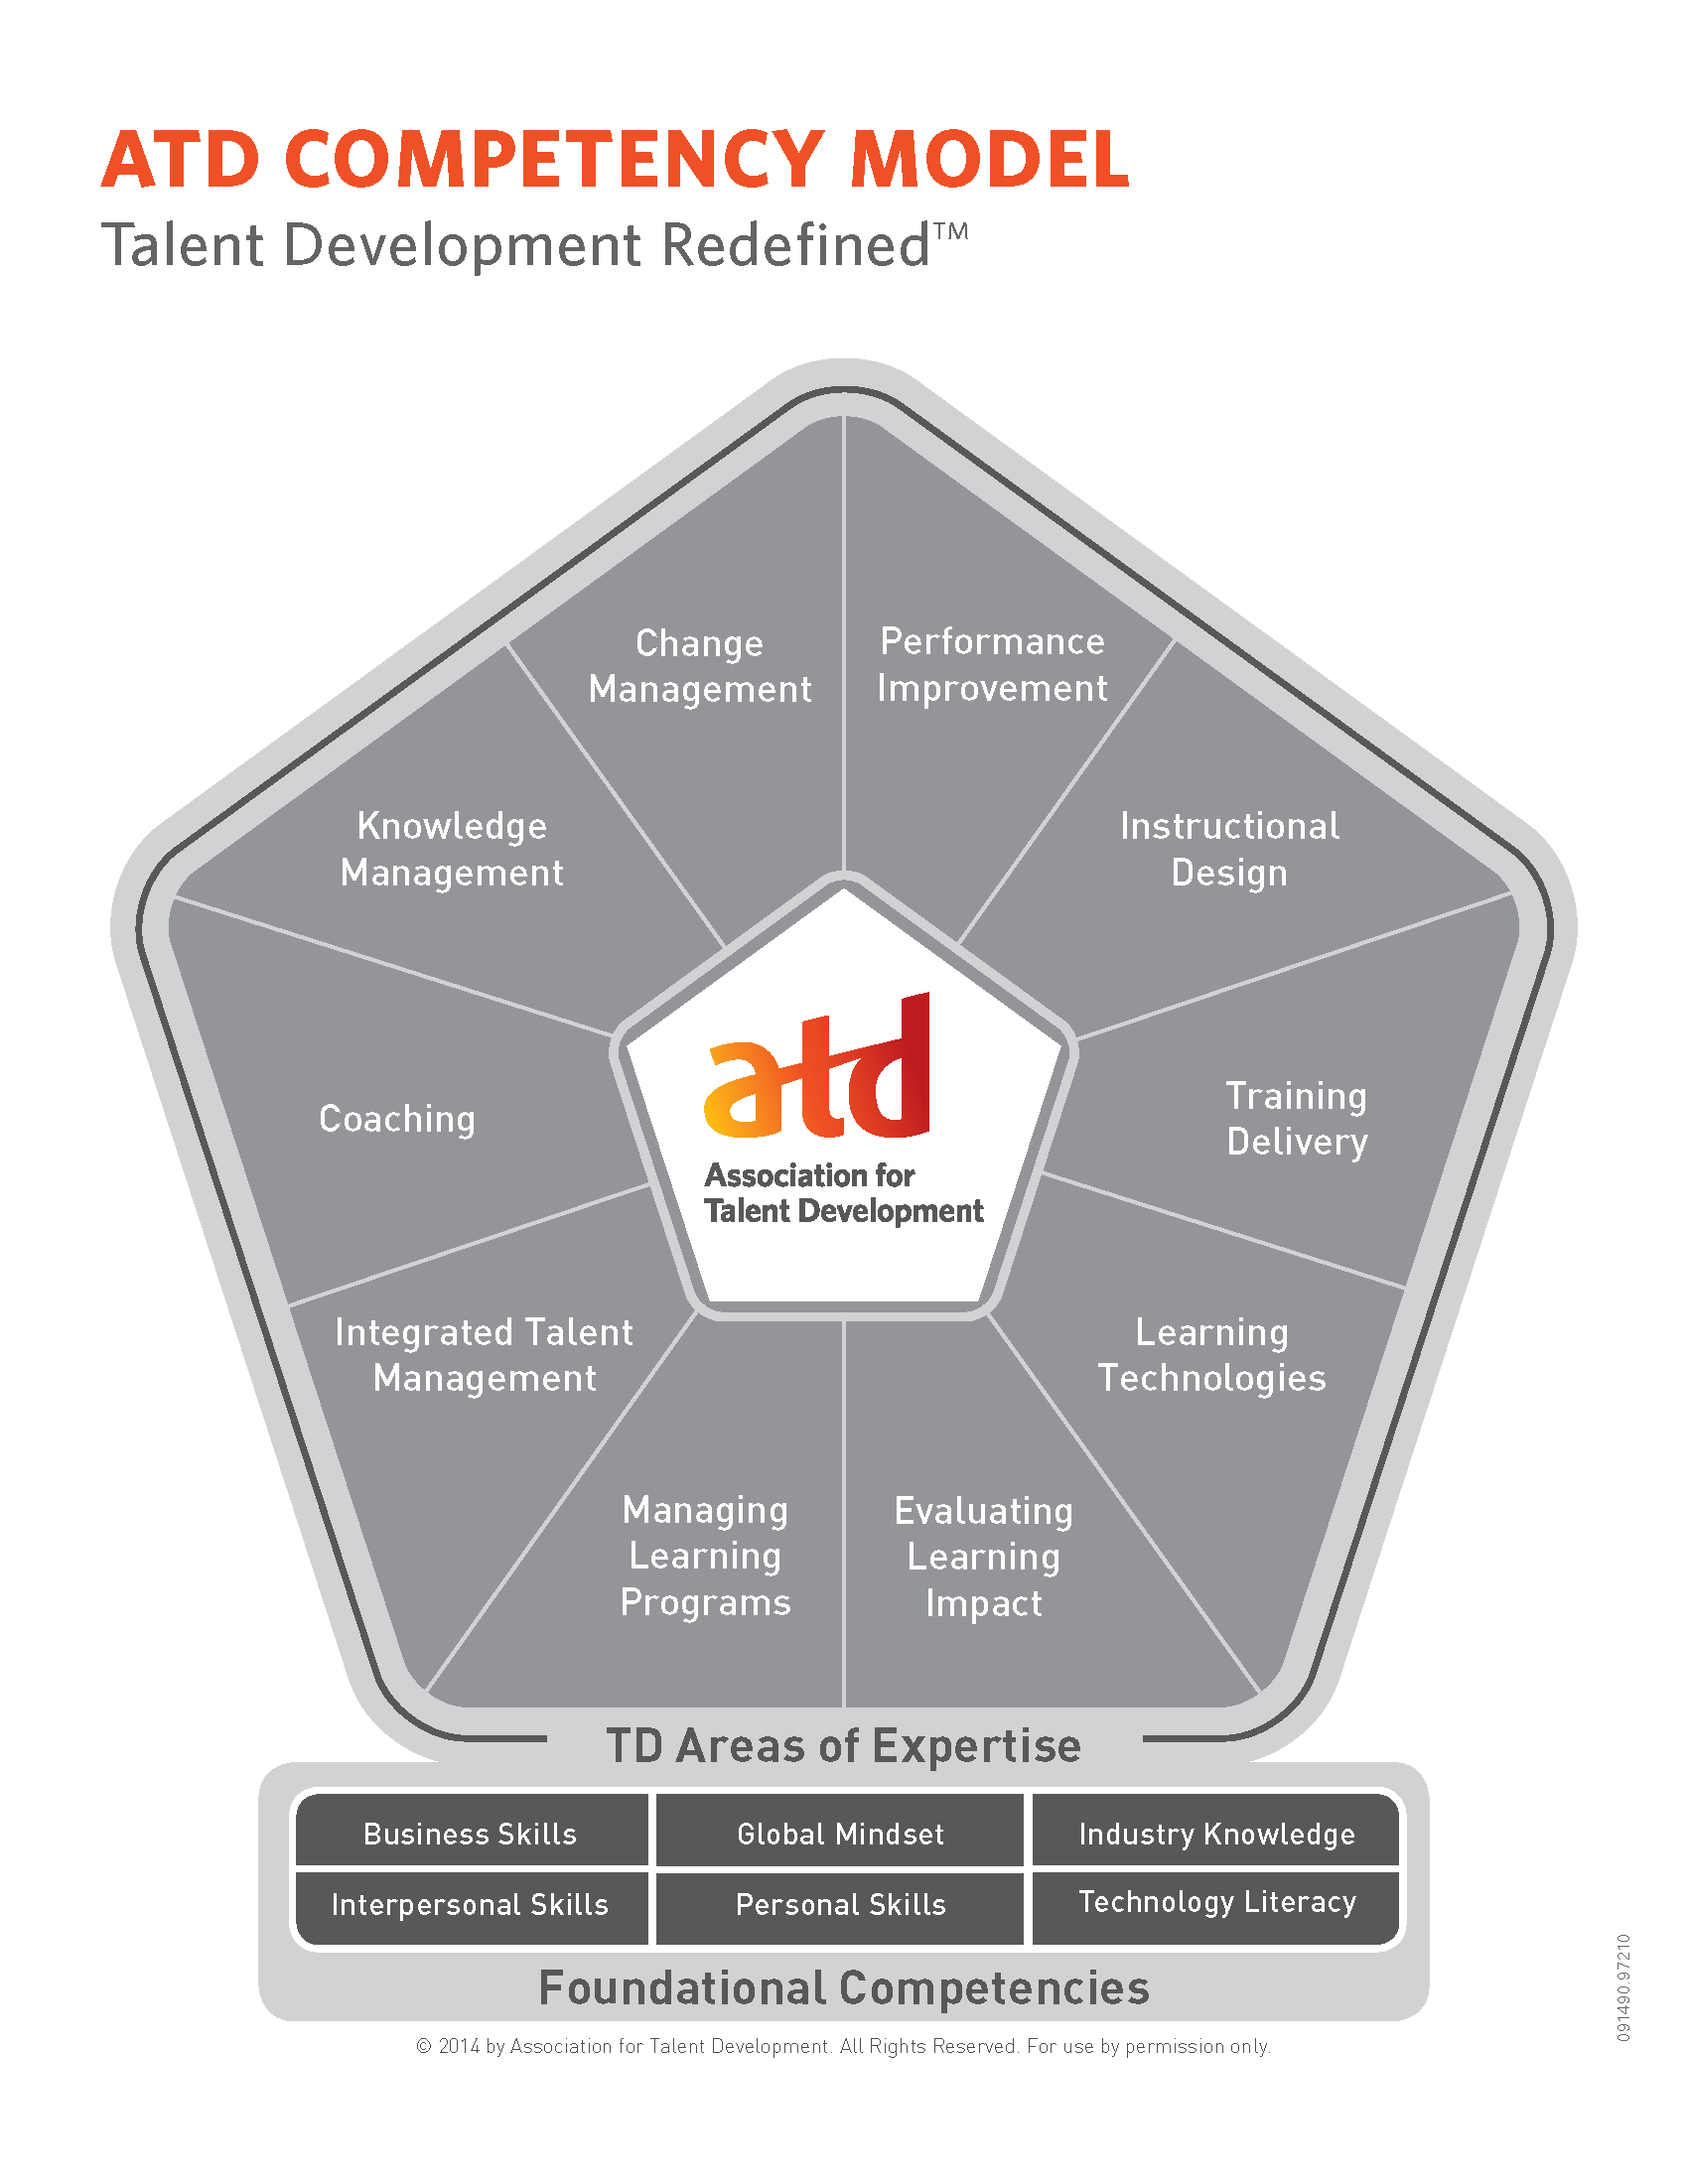 Click to see more details about the ASTD competency model